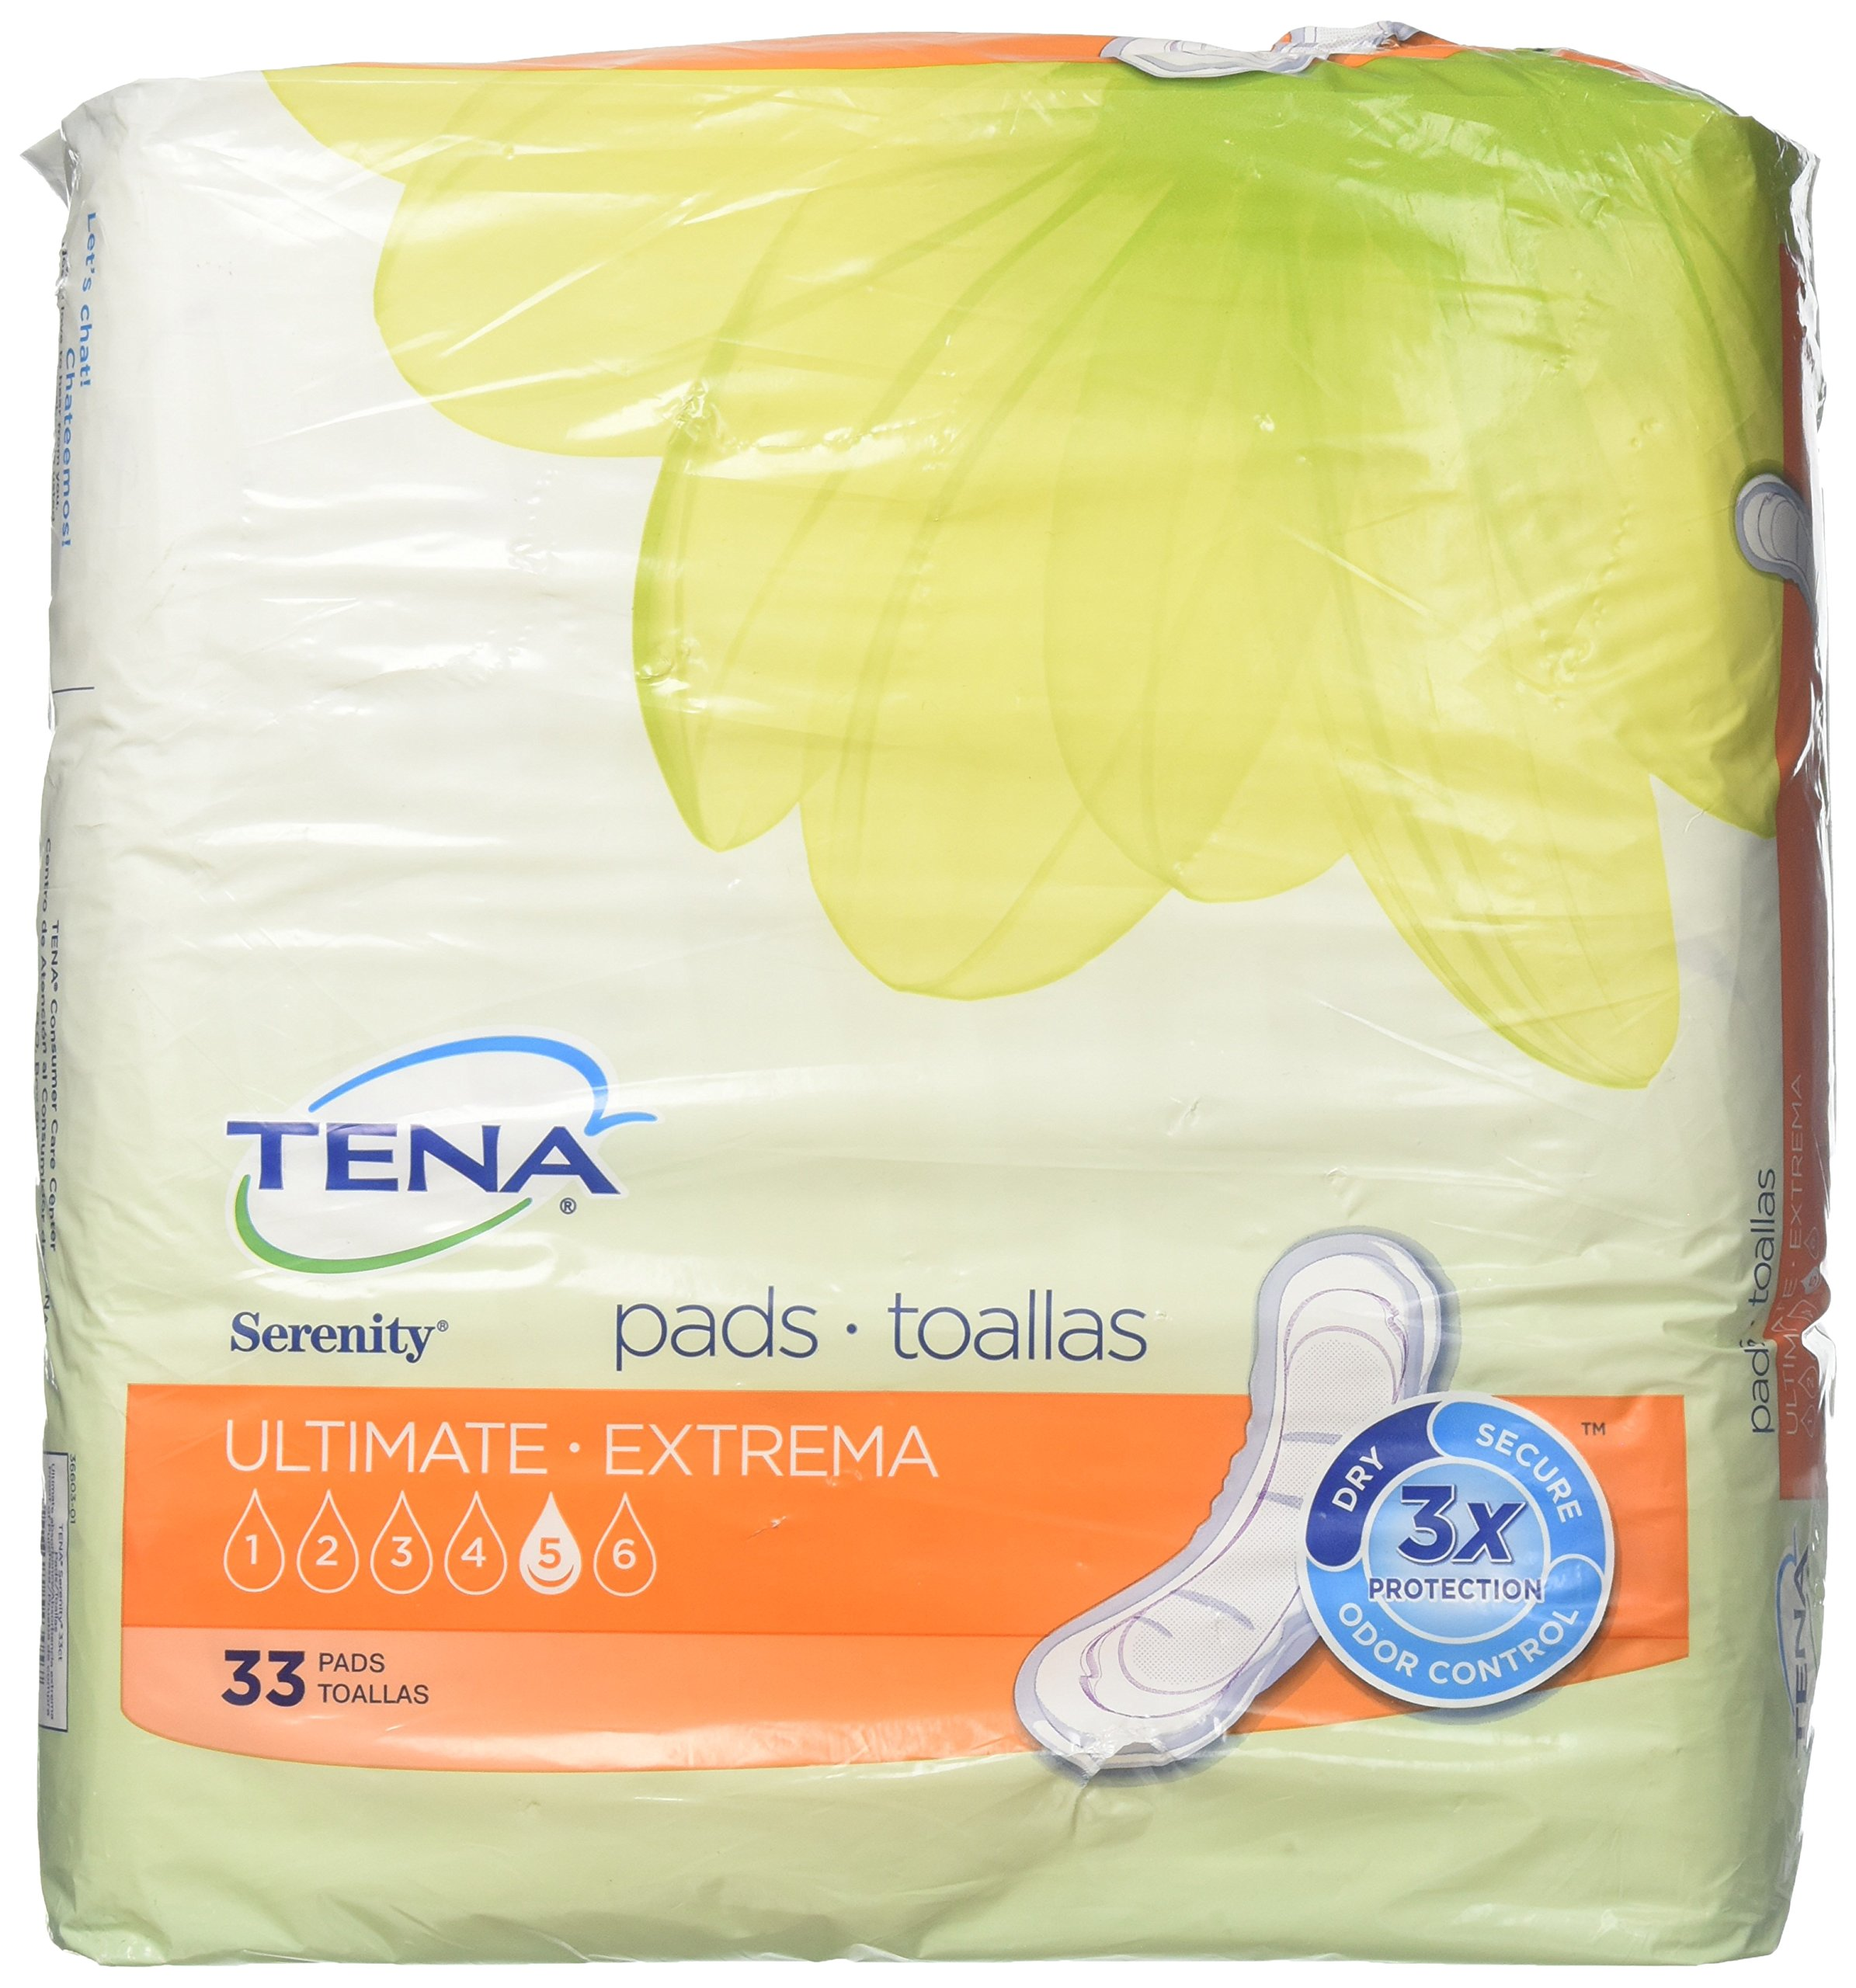 Tena Incontinence Pads for Women, Ultimate, 33 Count (Packaging May Vary)